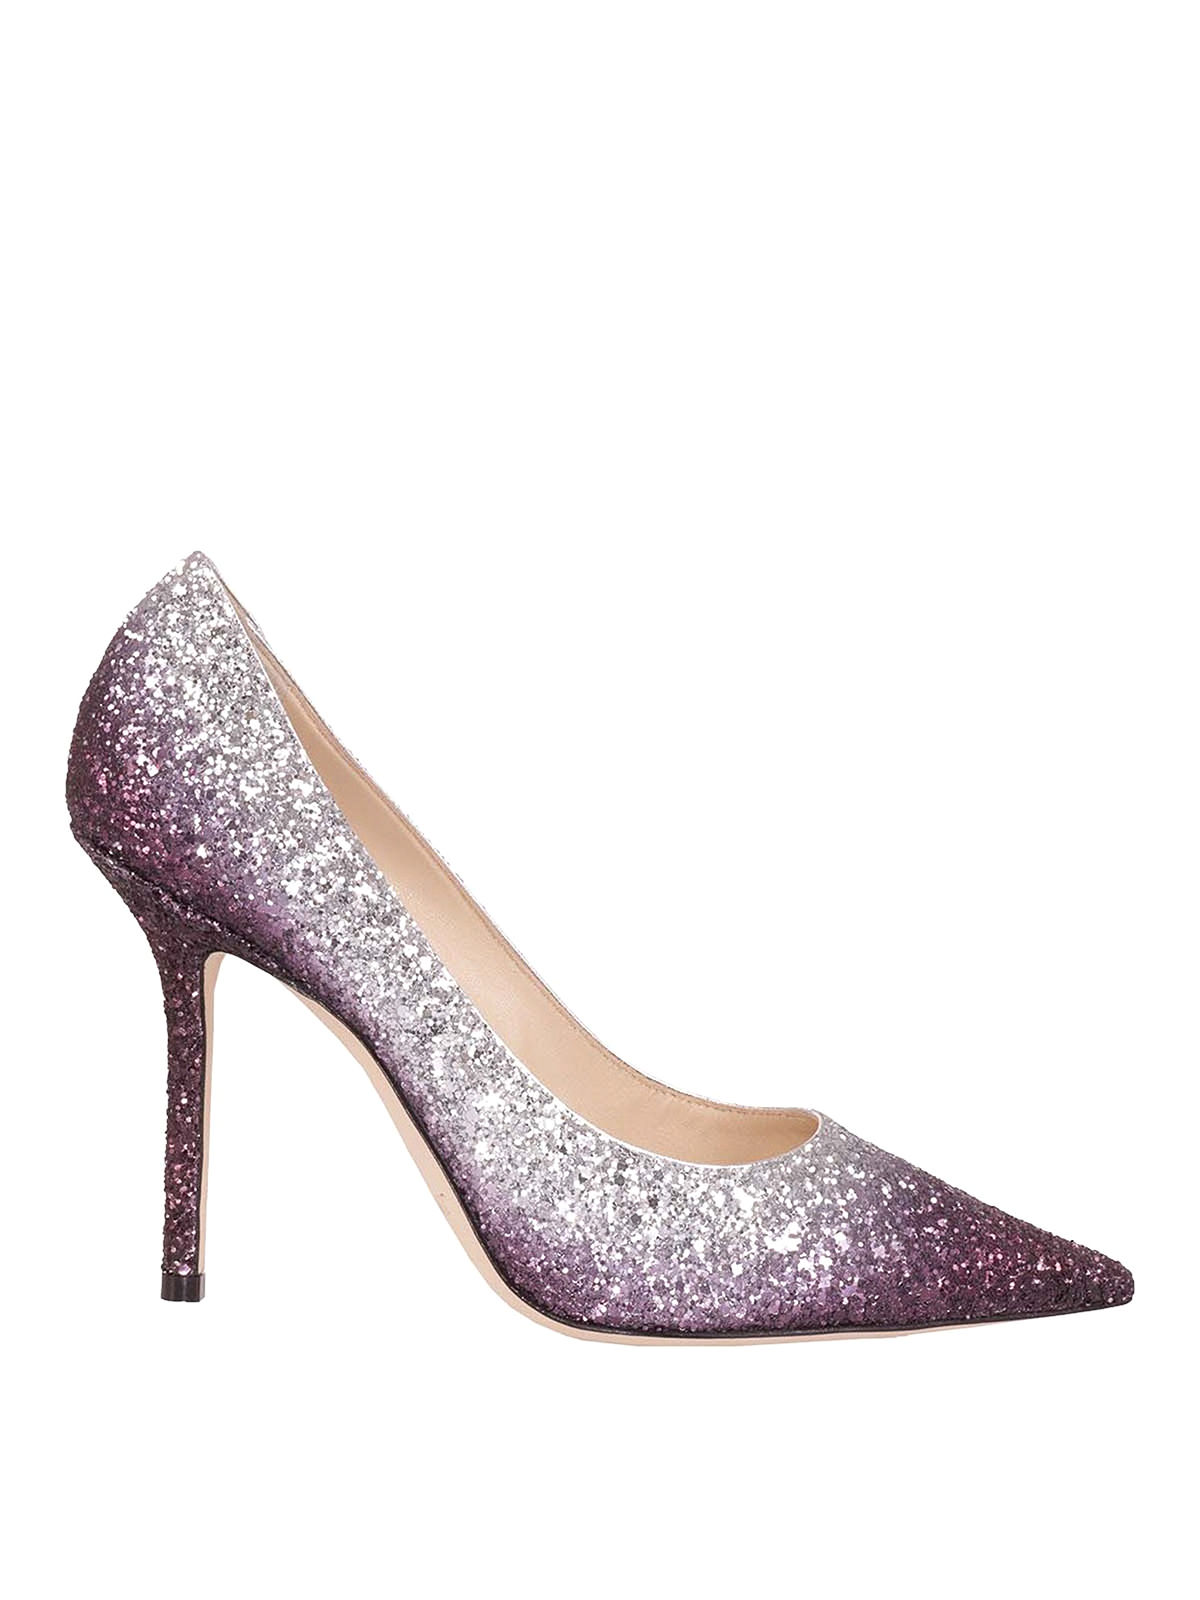 Jimmy Choo High heels LOVE 100 PUMPS